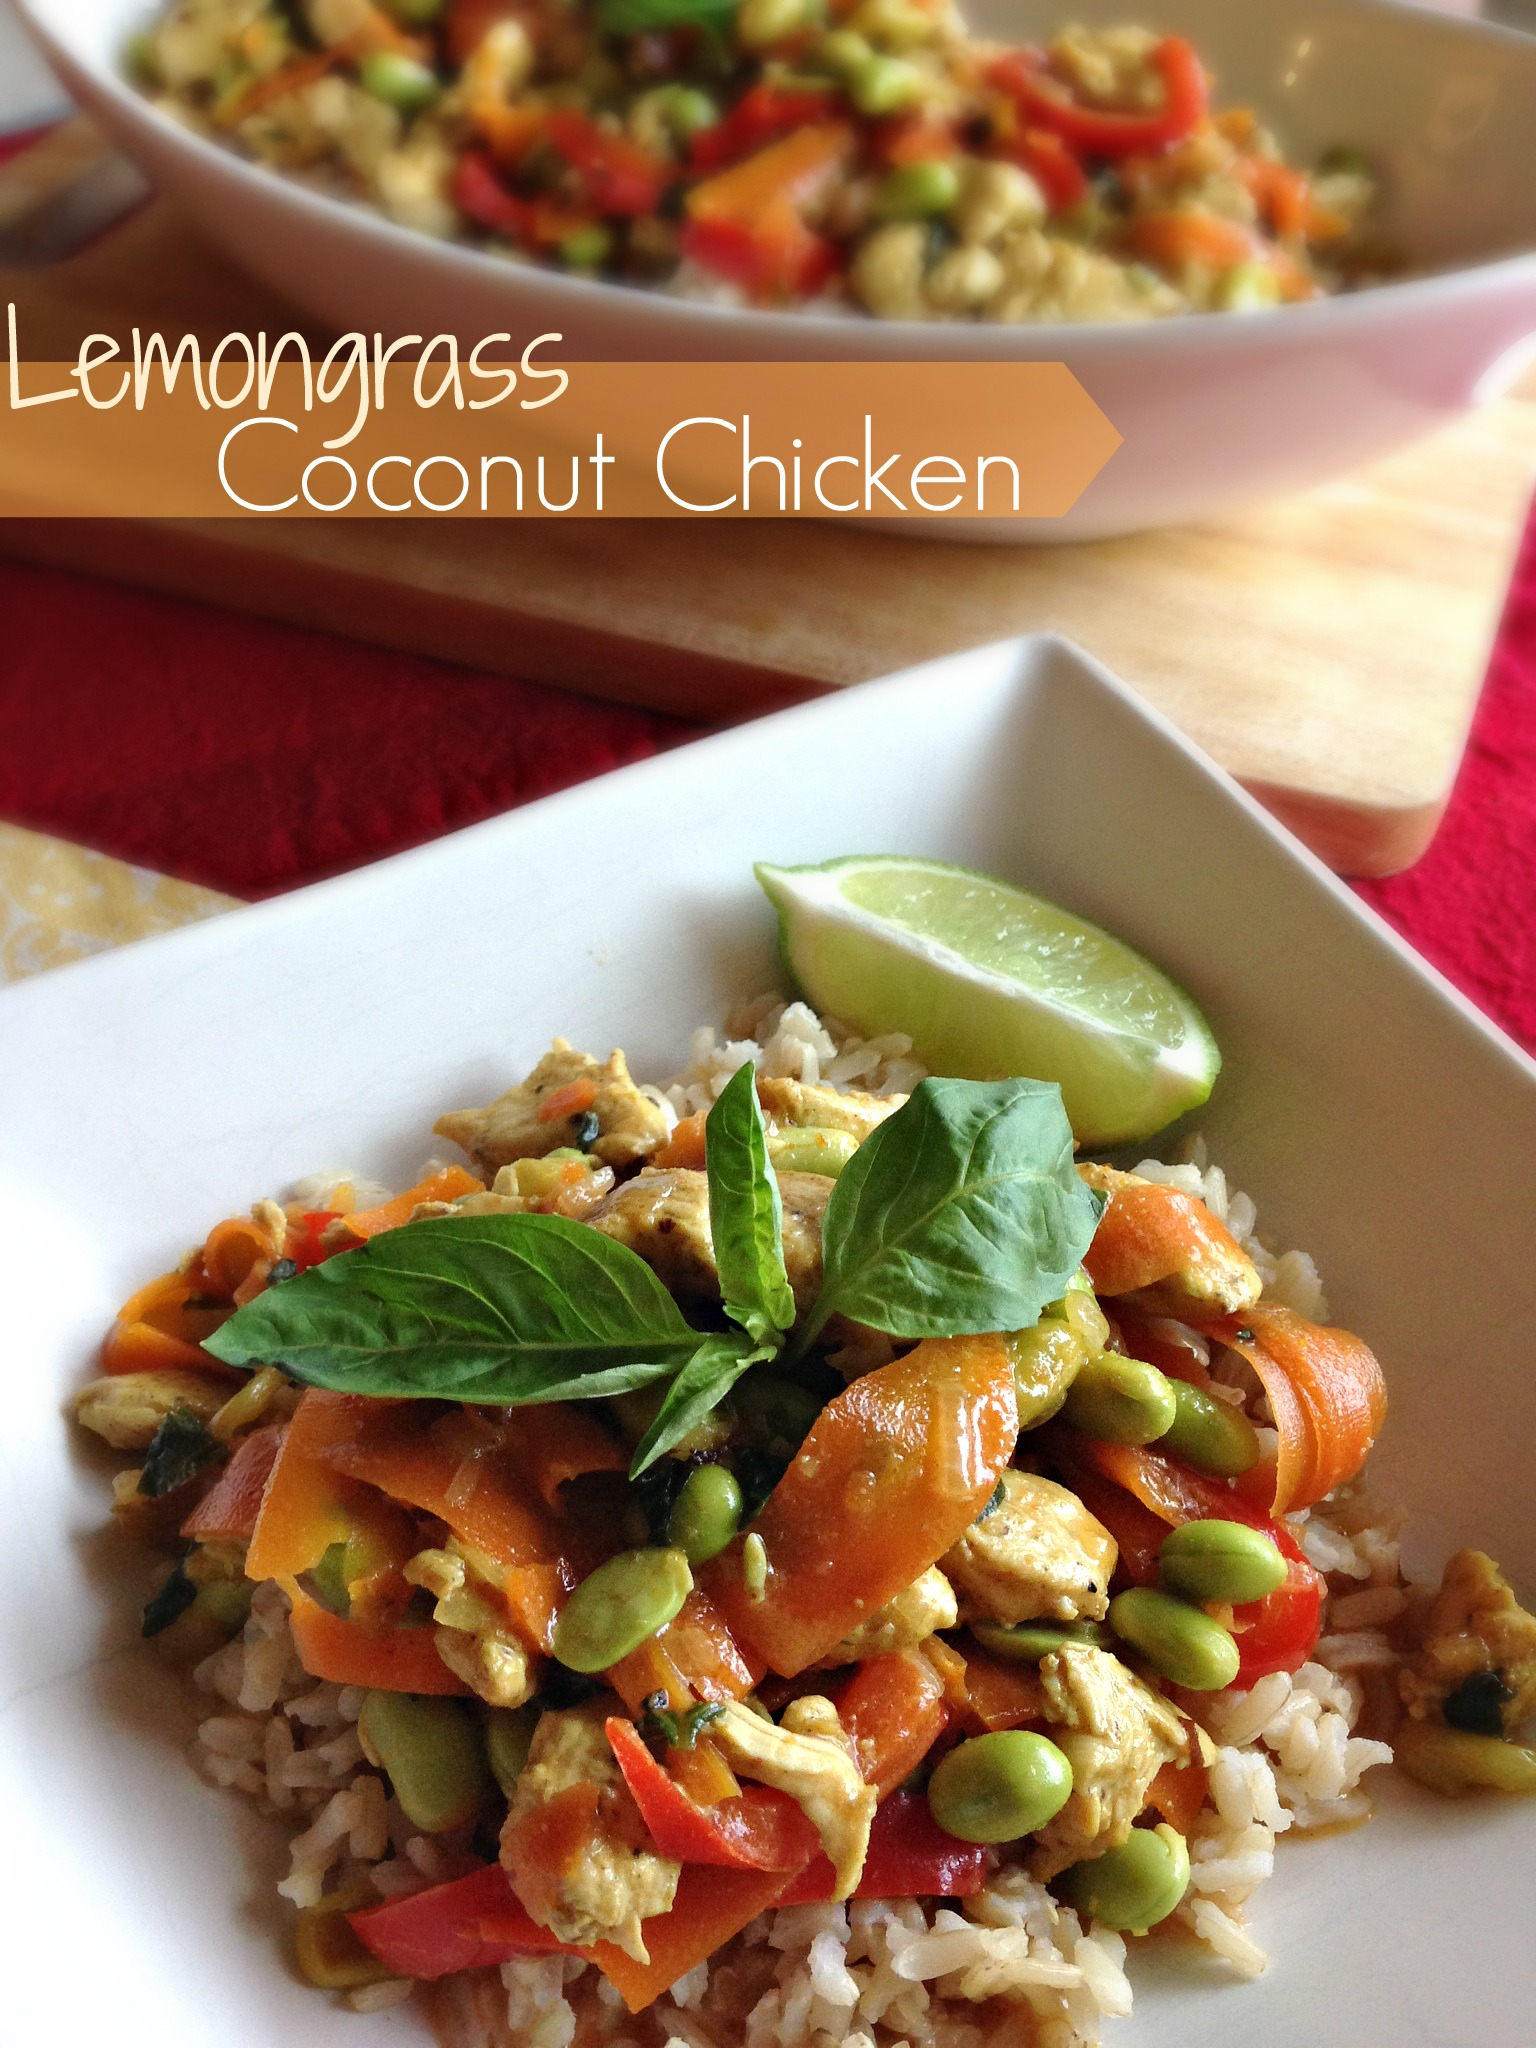 Lemongrass Coconut Chicken